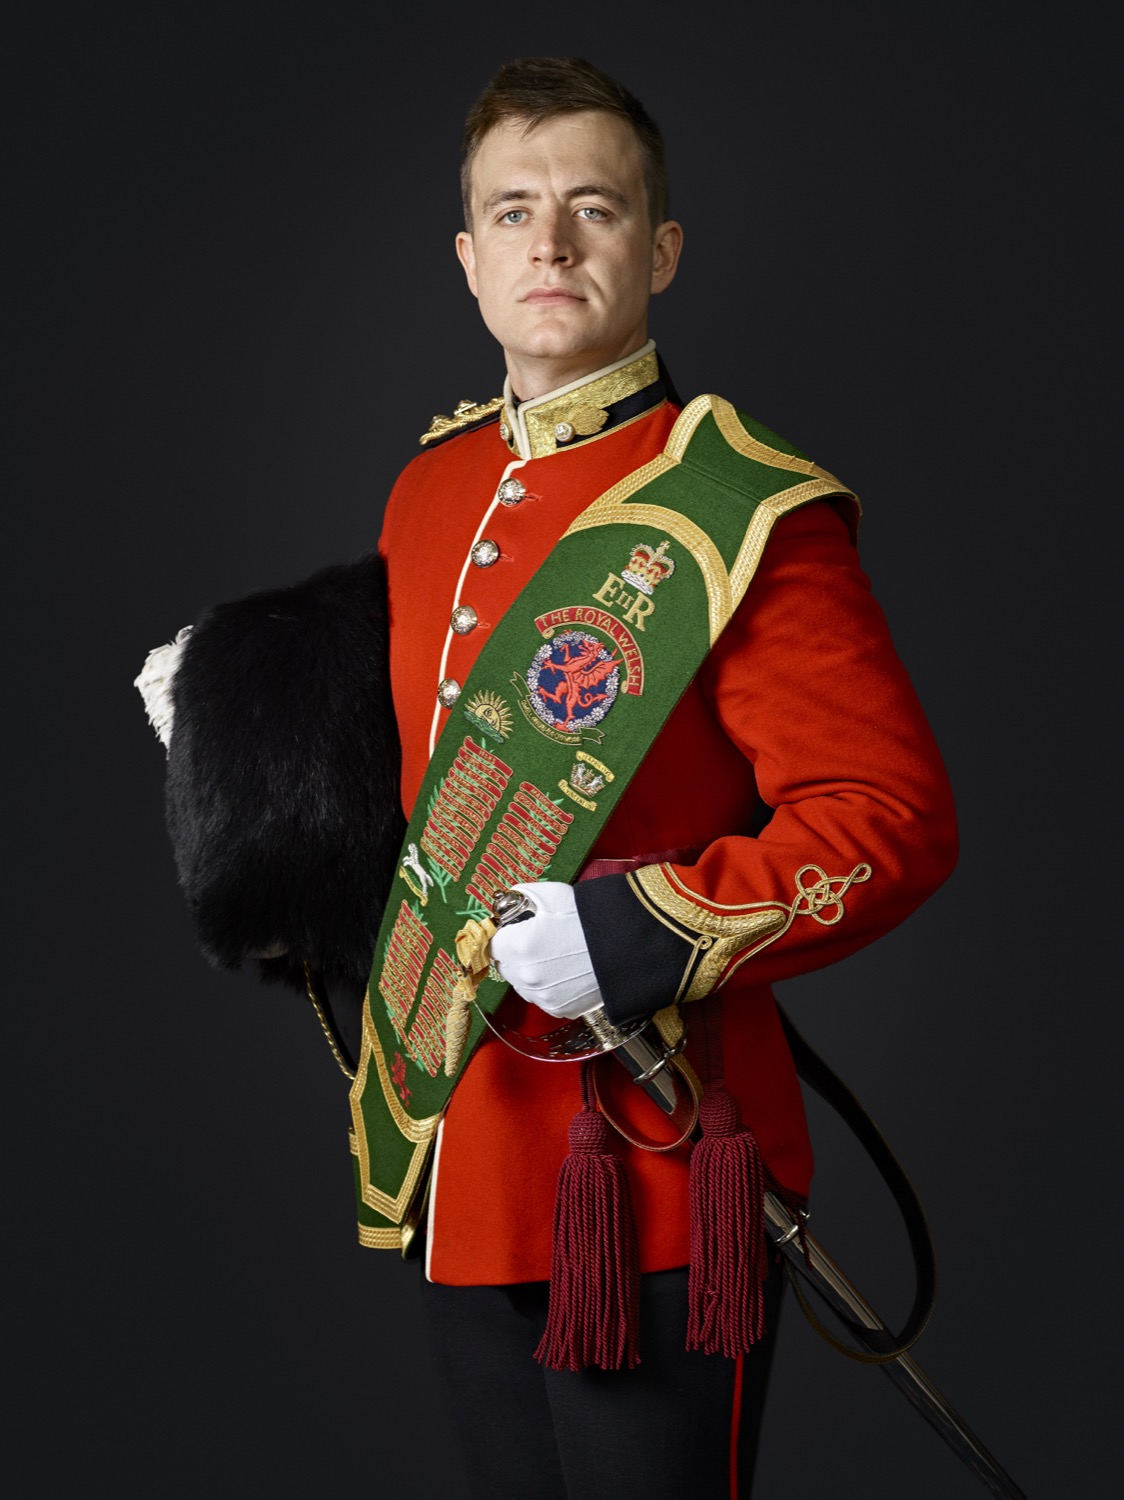 Lt Ixer 1st Battalion Royal Welsh Regiment (Rory Lewis Military Portrait Photographer London.